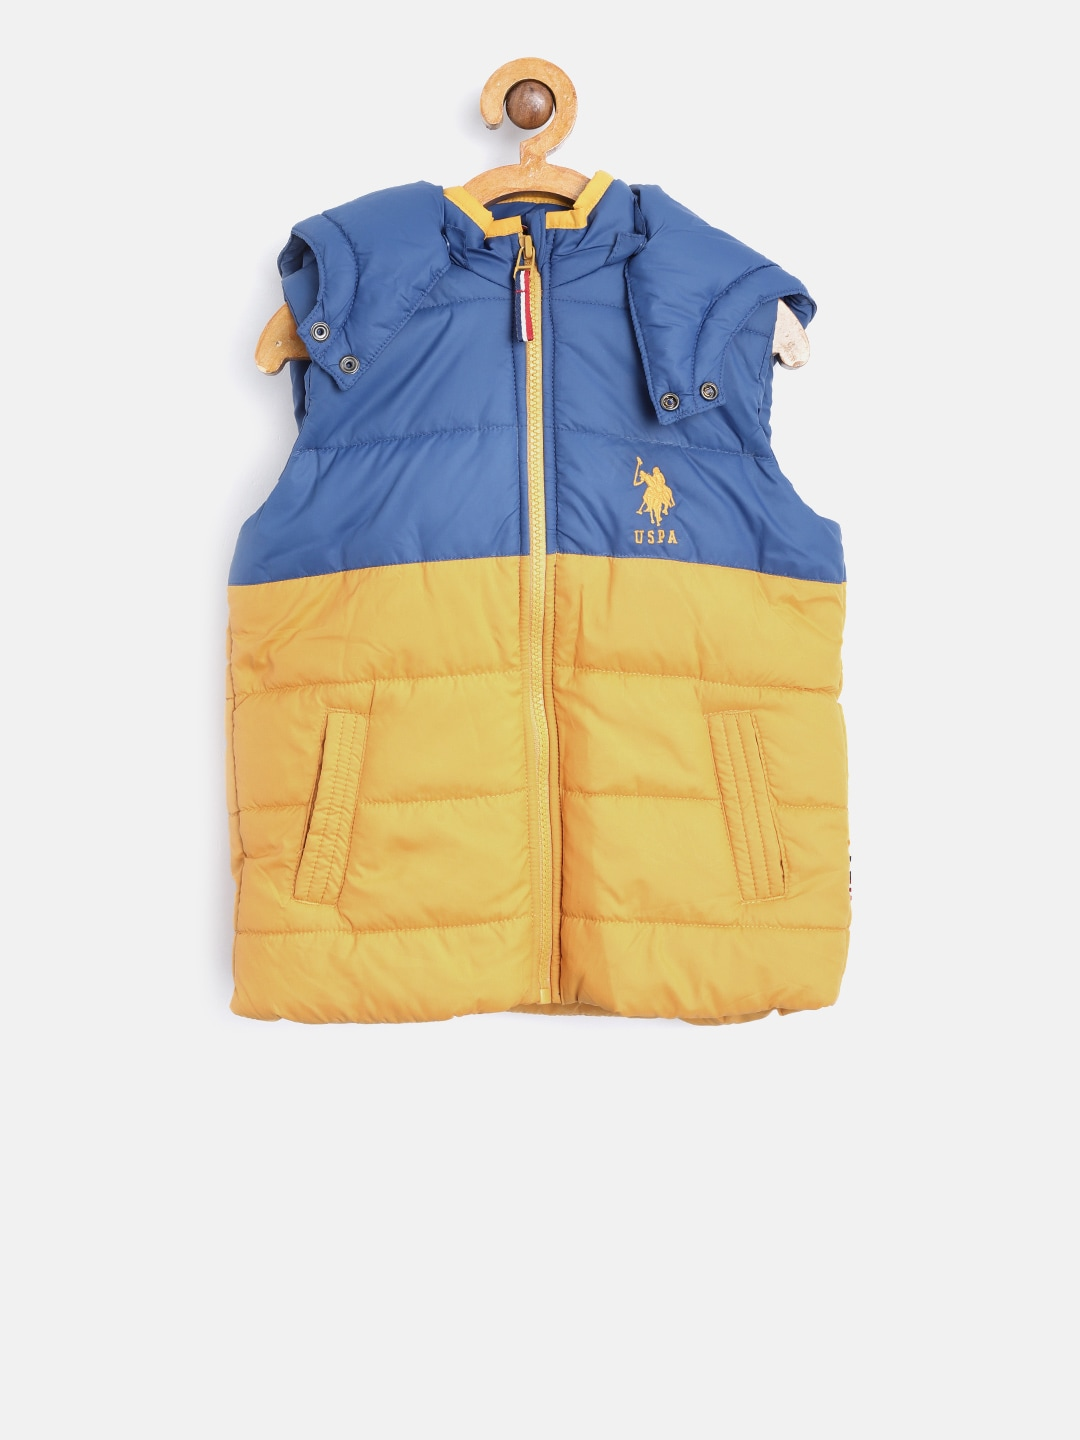 a99a676ec Us Polo Assn Kids Jackets - Buy Us Polo Assn Kids Jackets online in ...